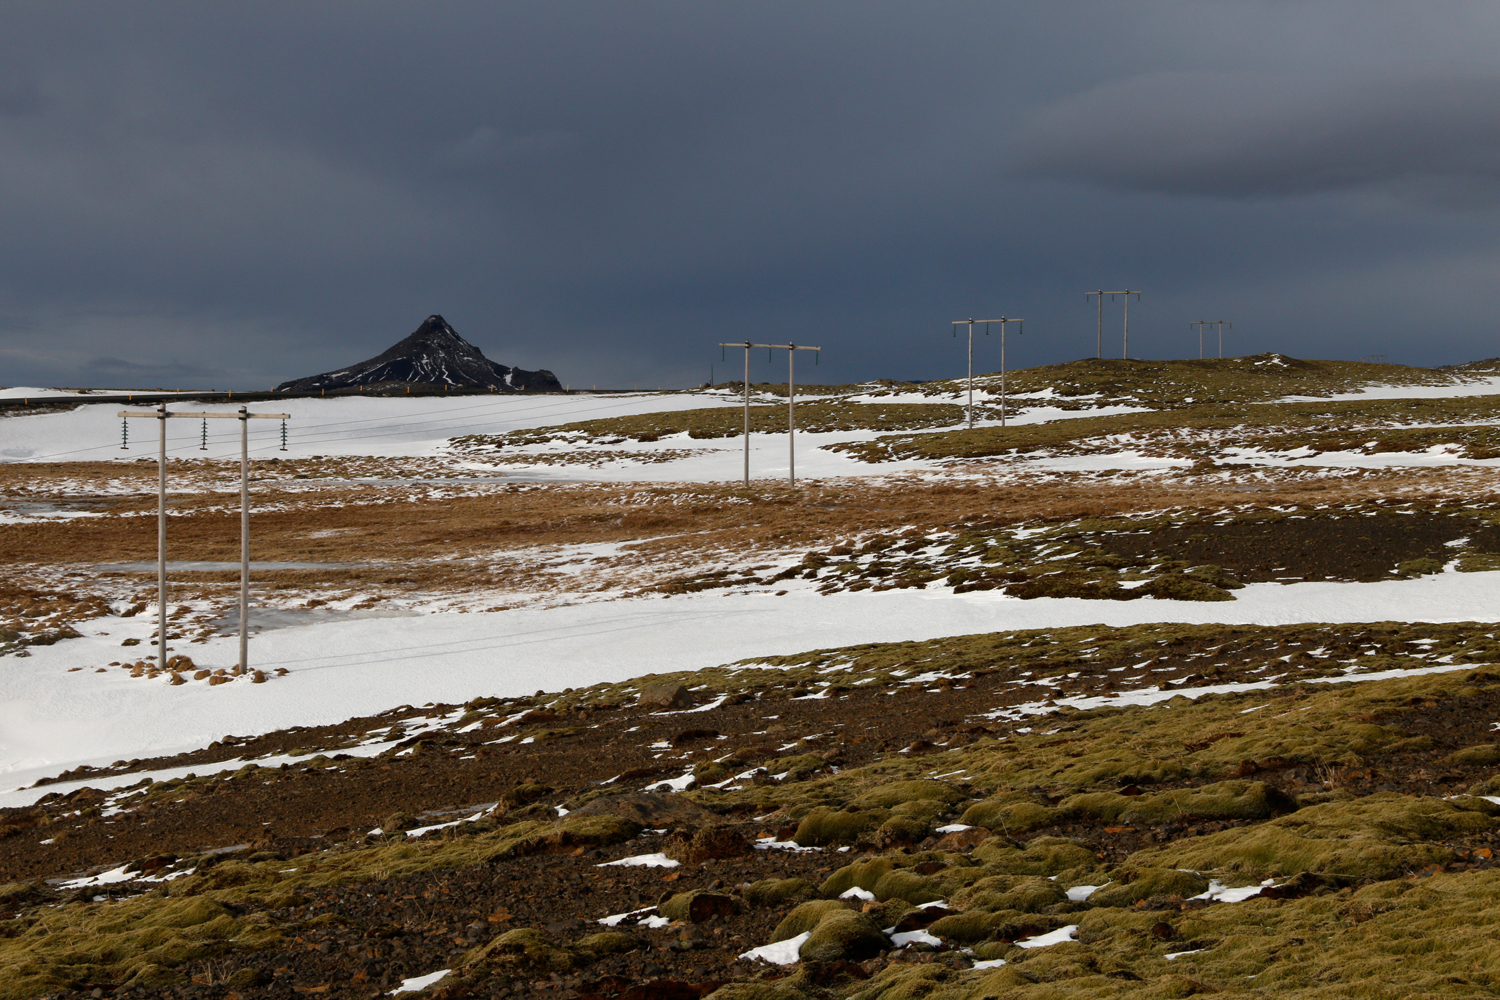 Transmission towers lead up a hill that is covered in the green of lichens, the white of unspoilt snow and the light brown of dry grass, with a black, jagged mountain in the distance and dark clouds looming above.